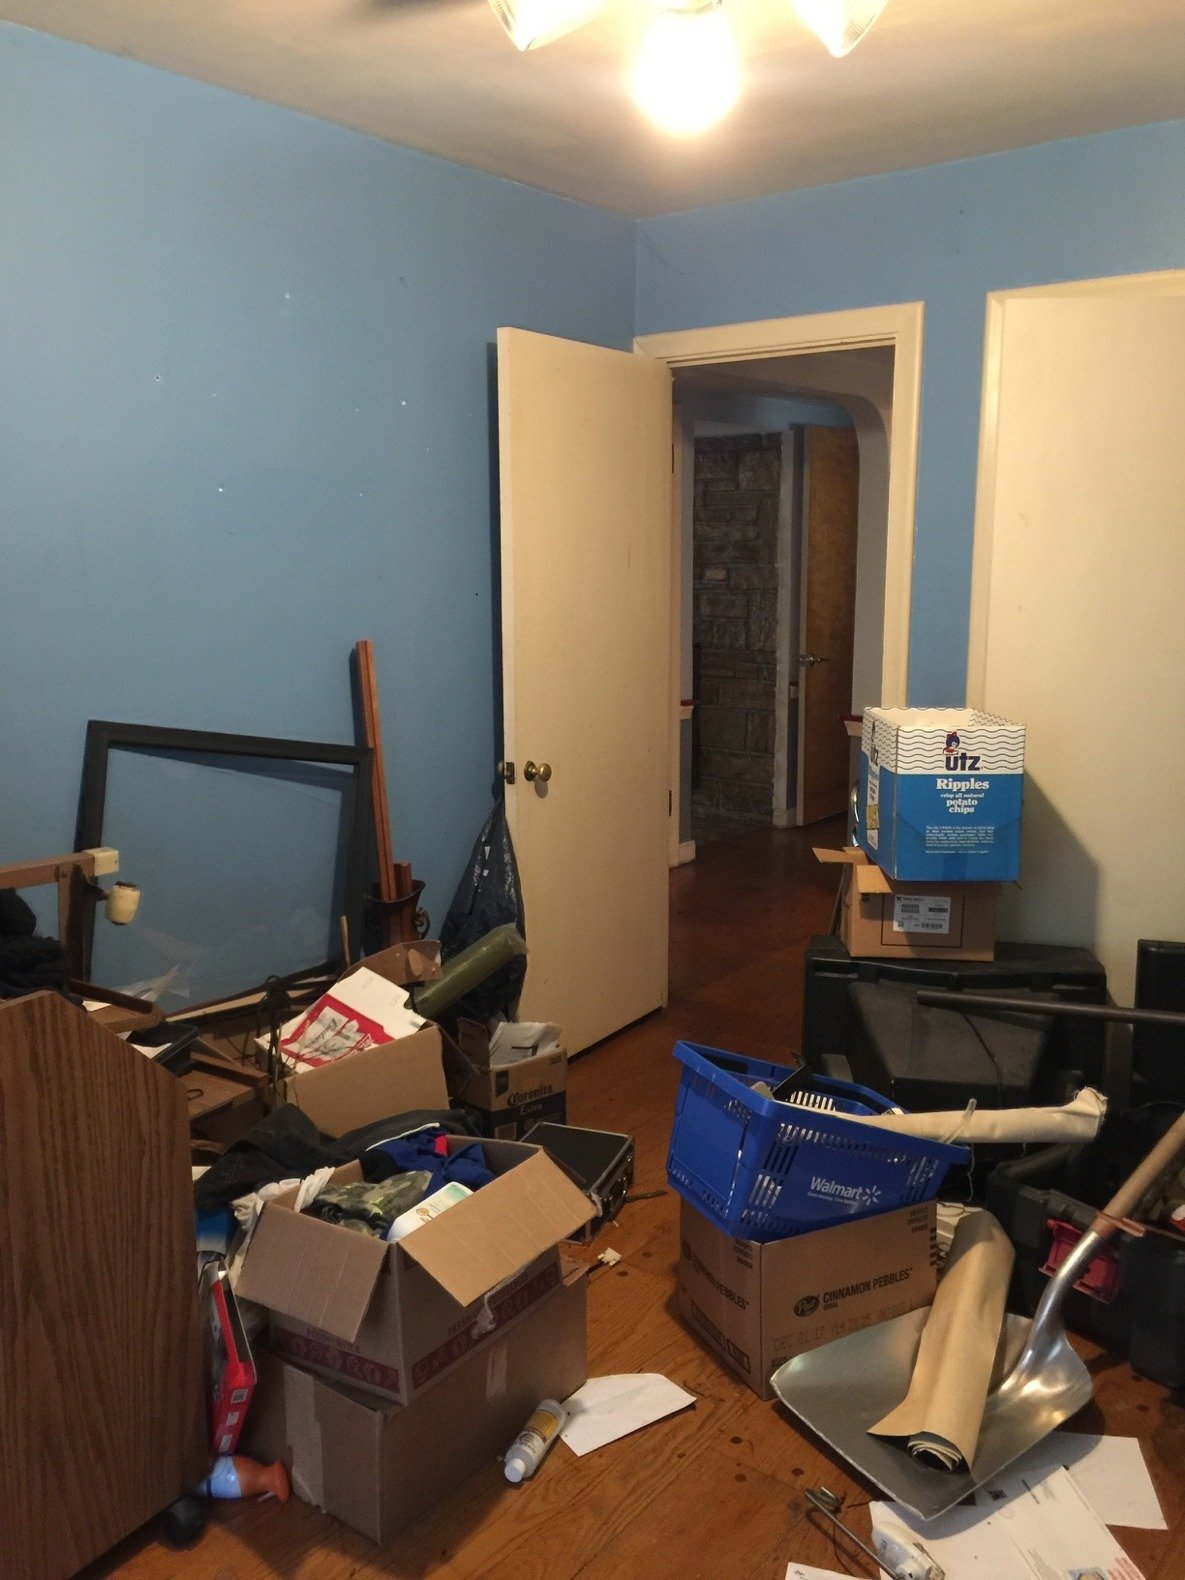 Purchased after foreclosure, the home needed a thorough cleaning before renovations.